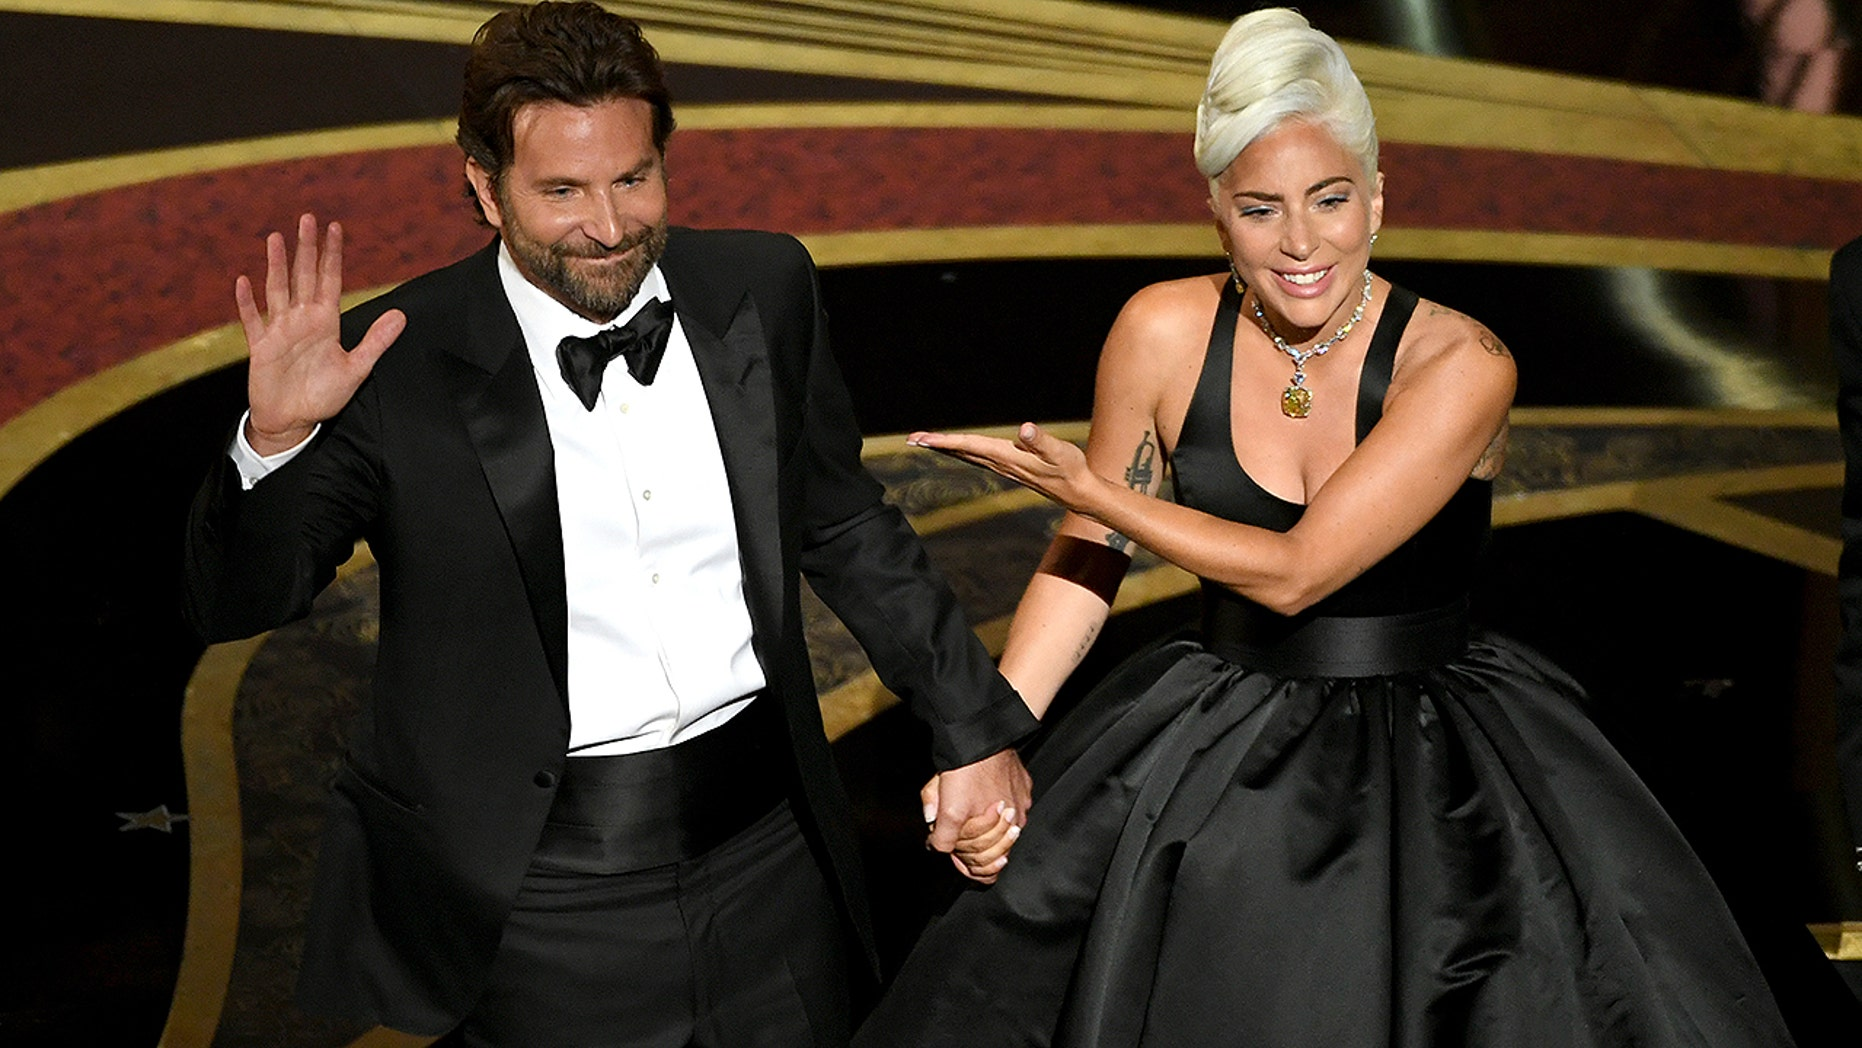 Bradley Cooper and Lady Gaga perform onstage during the 91st Academy Awards at Dolby Theatre on Feb. 24, 2019 in Hollywood, California. (Photo by Kevin Winter/Getty Images)